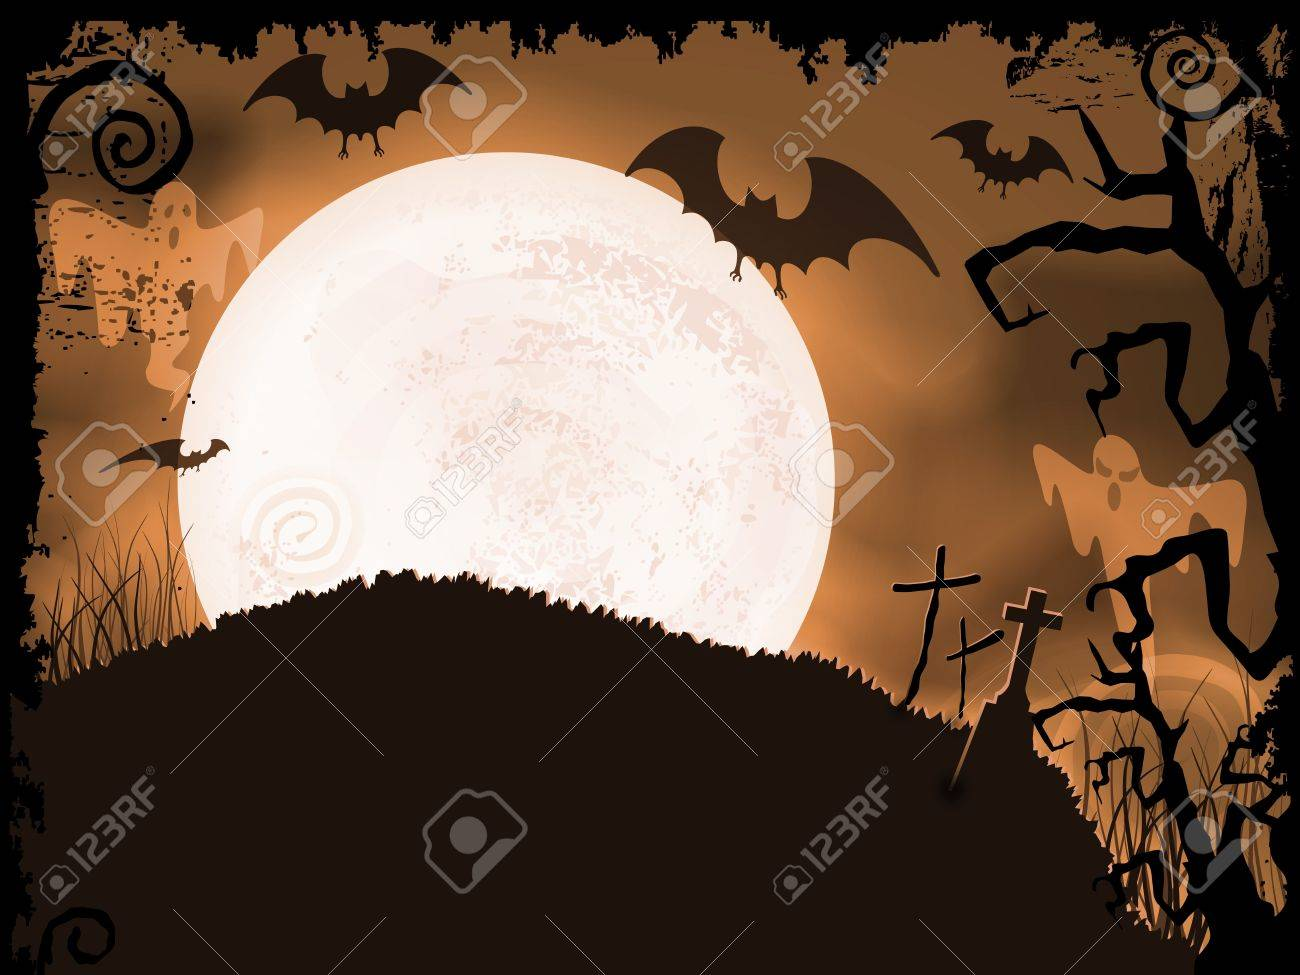 Halloween background with full moon, bats, ghosts, crosses and grunge elements. Stock Vector - 15627289